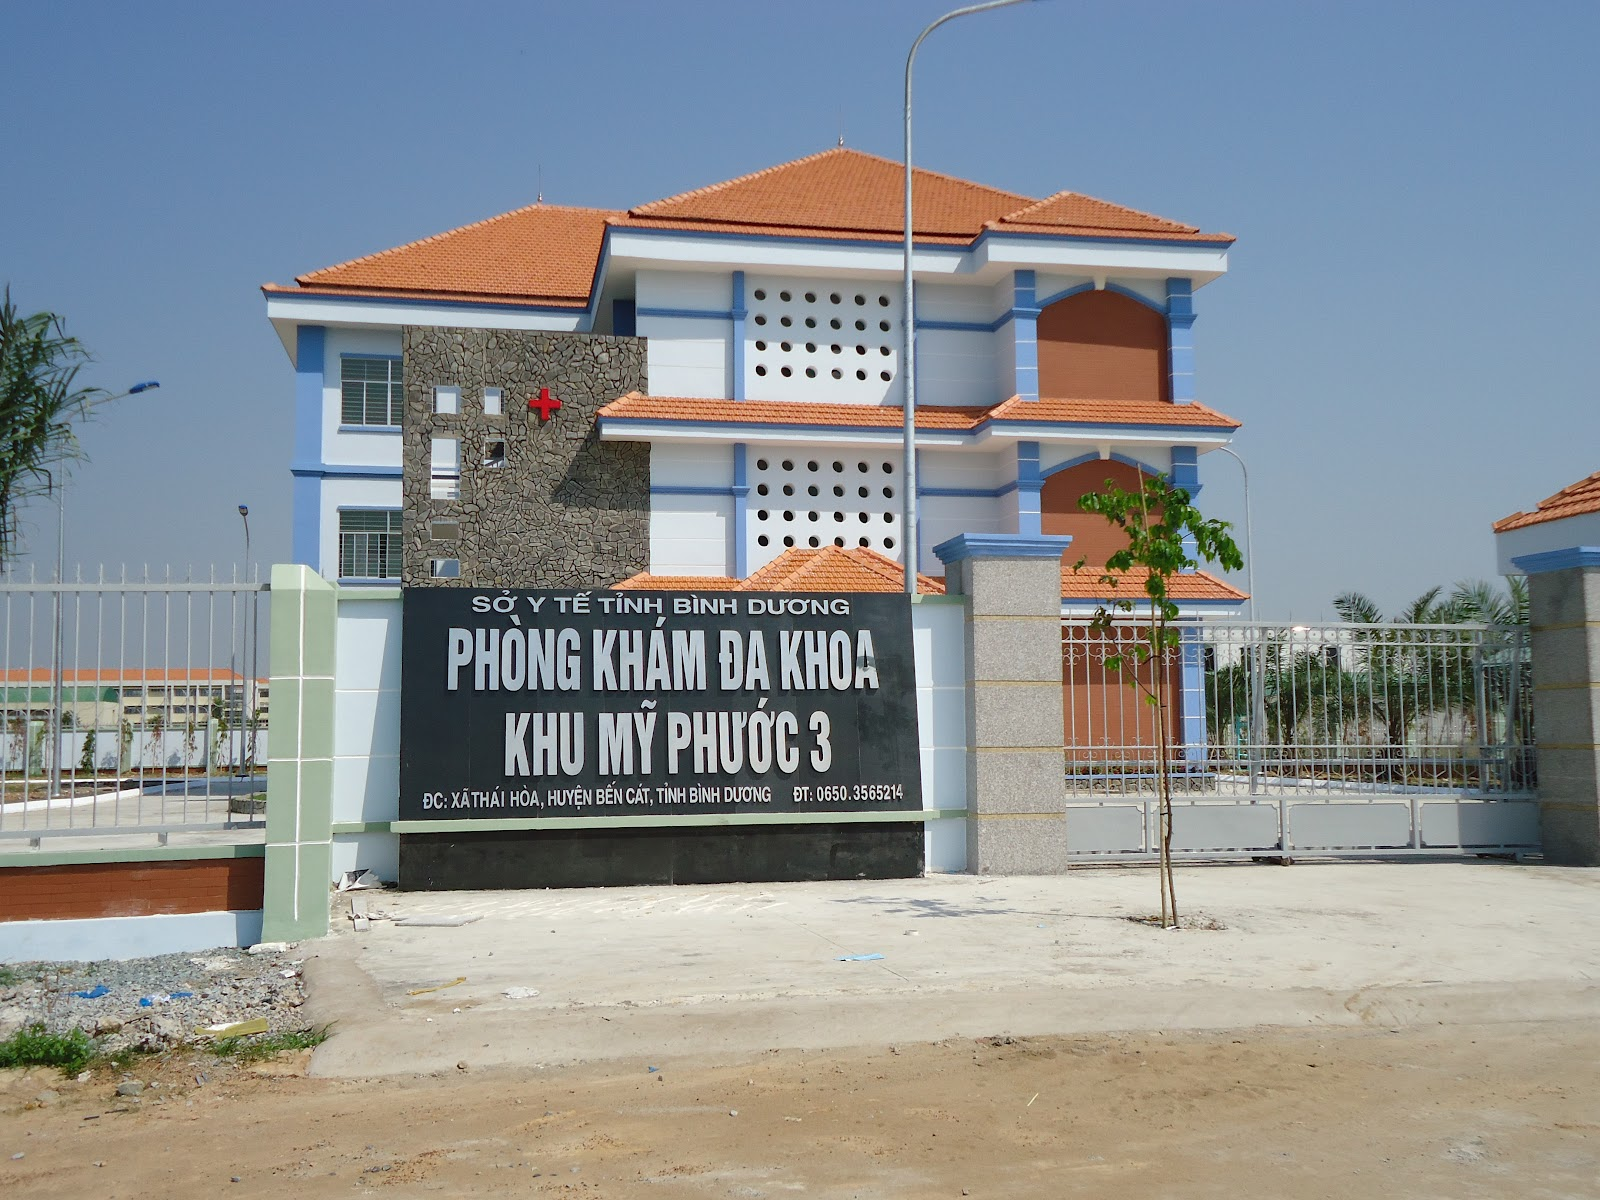 Image result for cho my phuoc 3